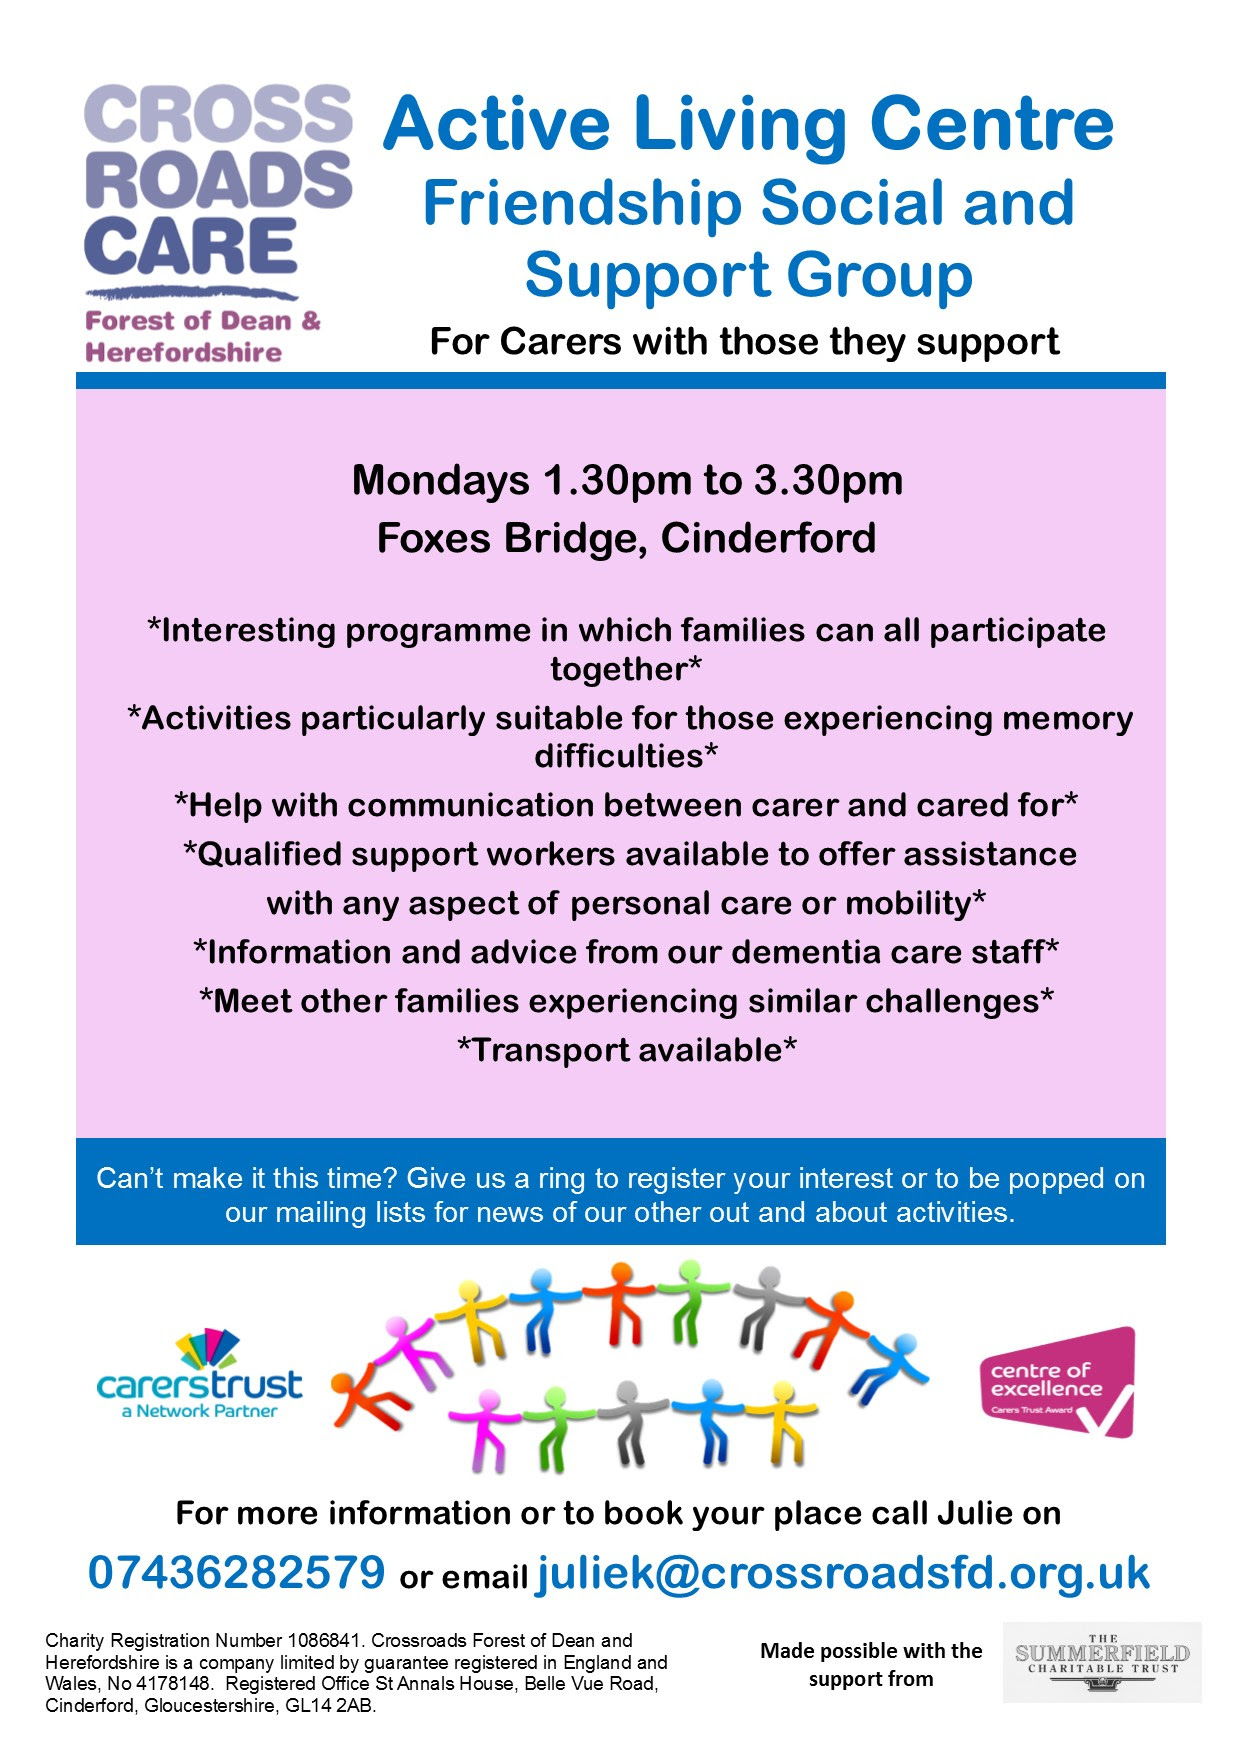 glos.info crossroads care support group